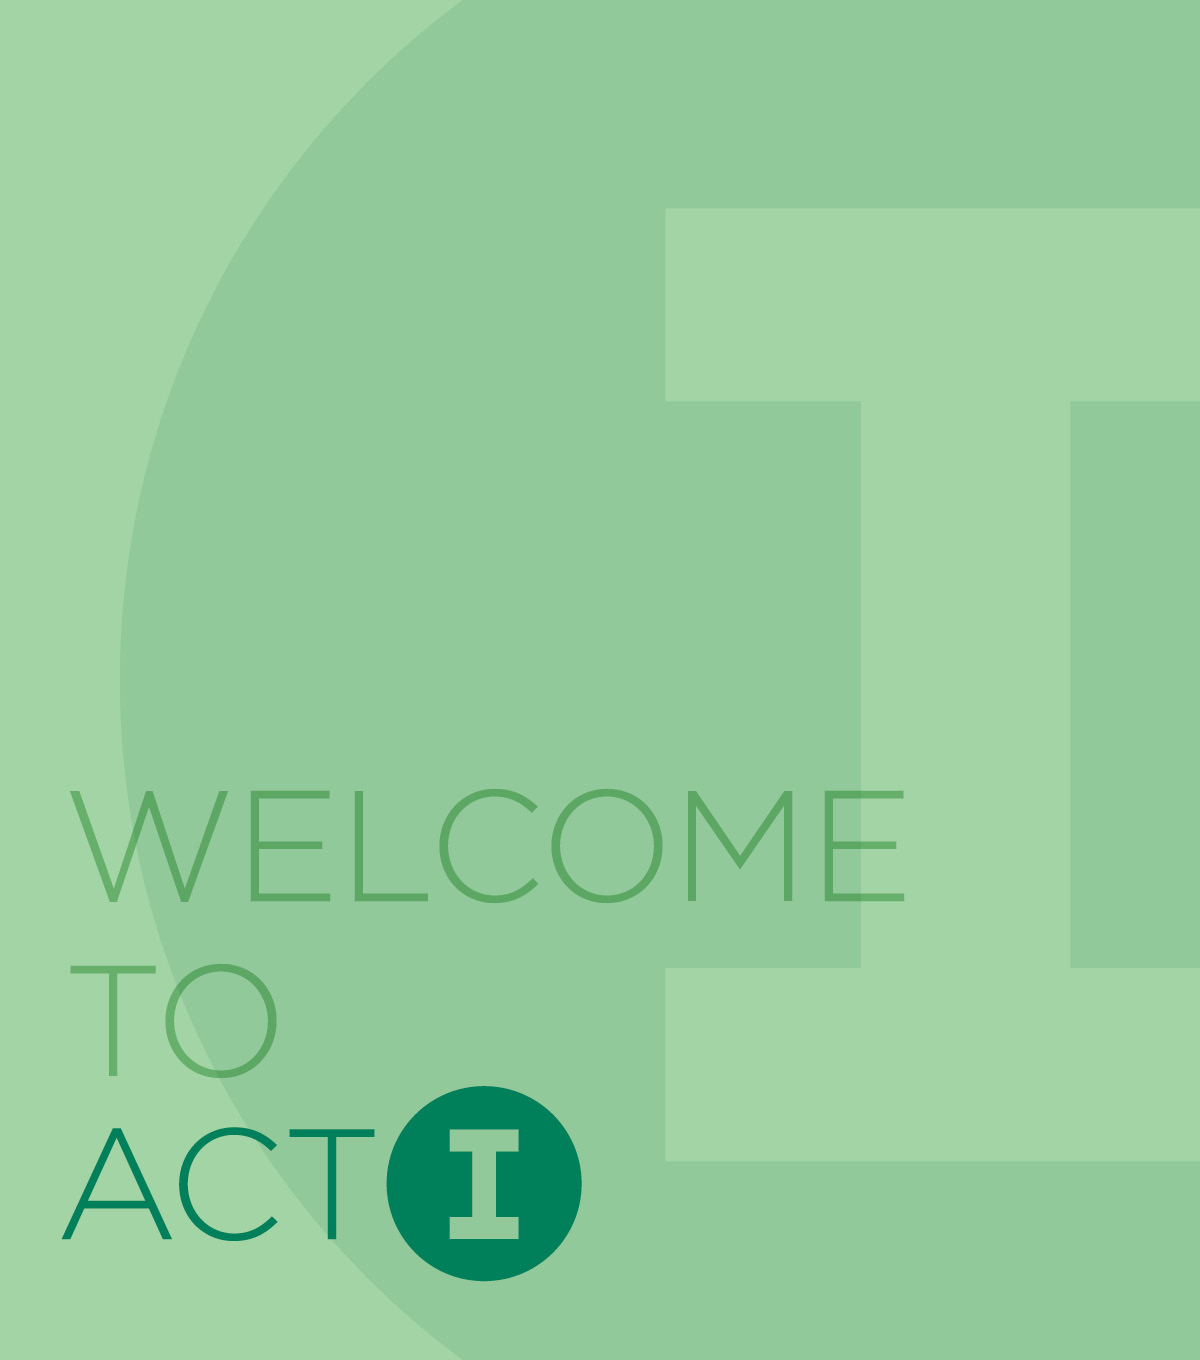 Welcome to Act I